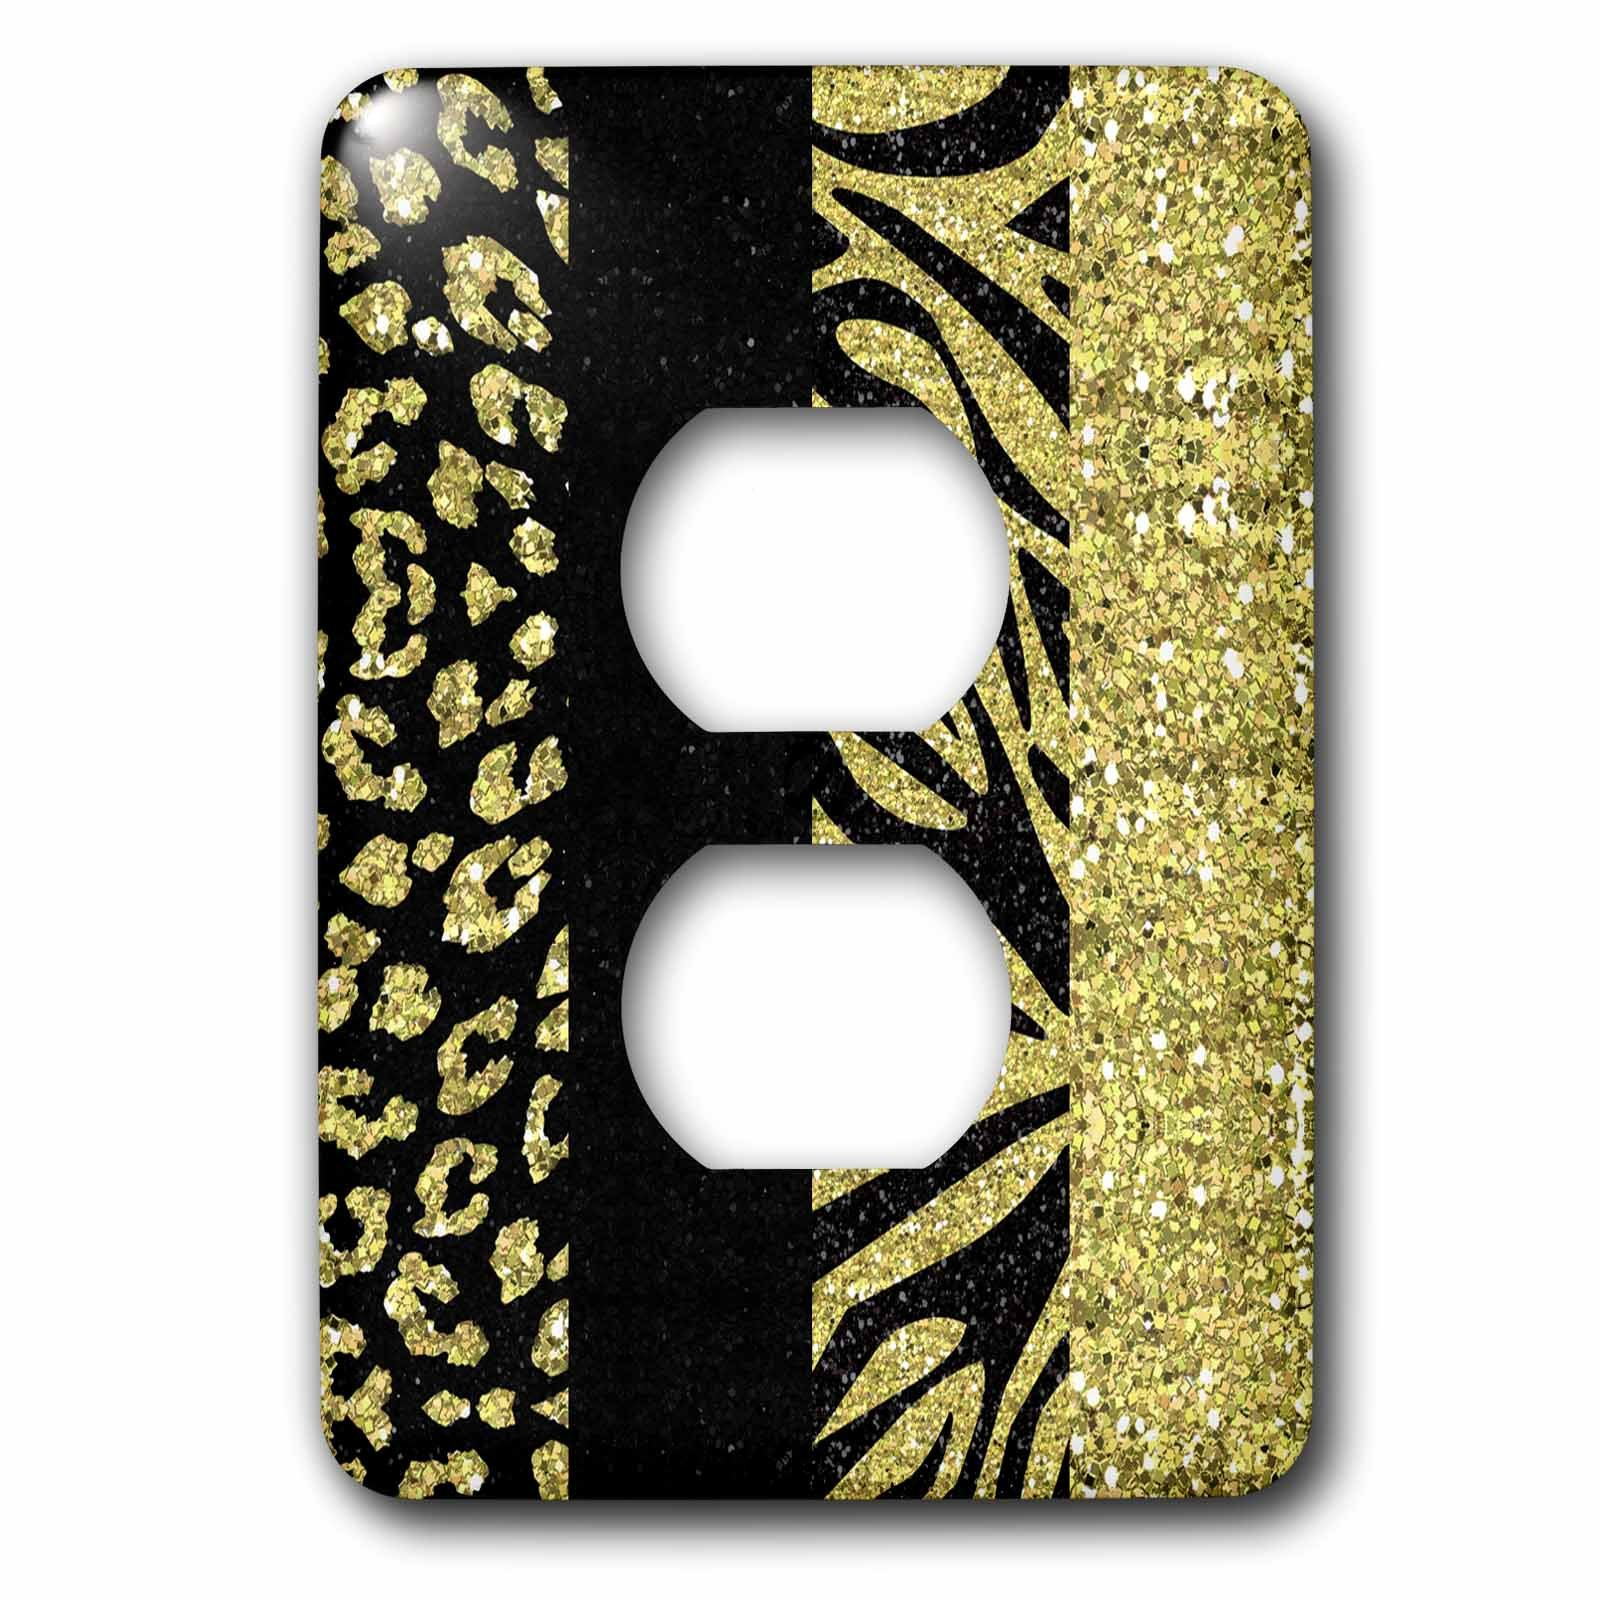 3dRose Lsp_128556_6 Printed Glitter Effect Gold and Black Animal Print - Leopard and Zebra 2 Plug Outlet Cover